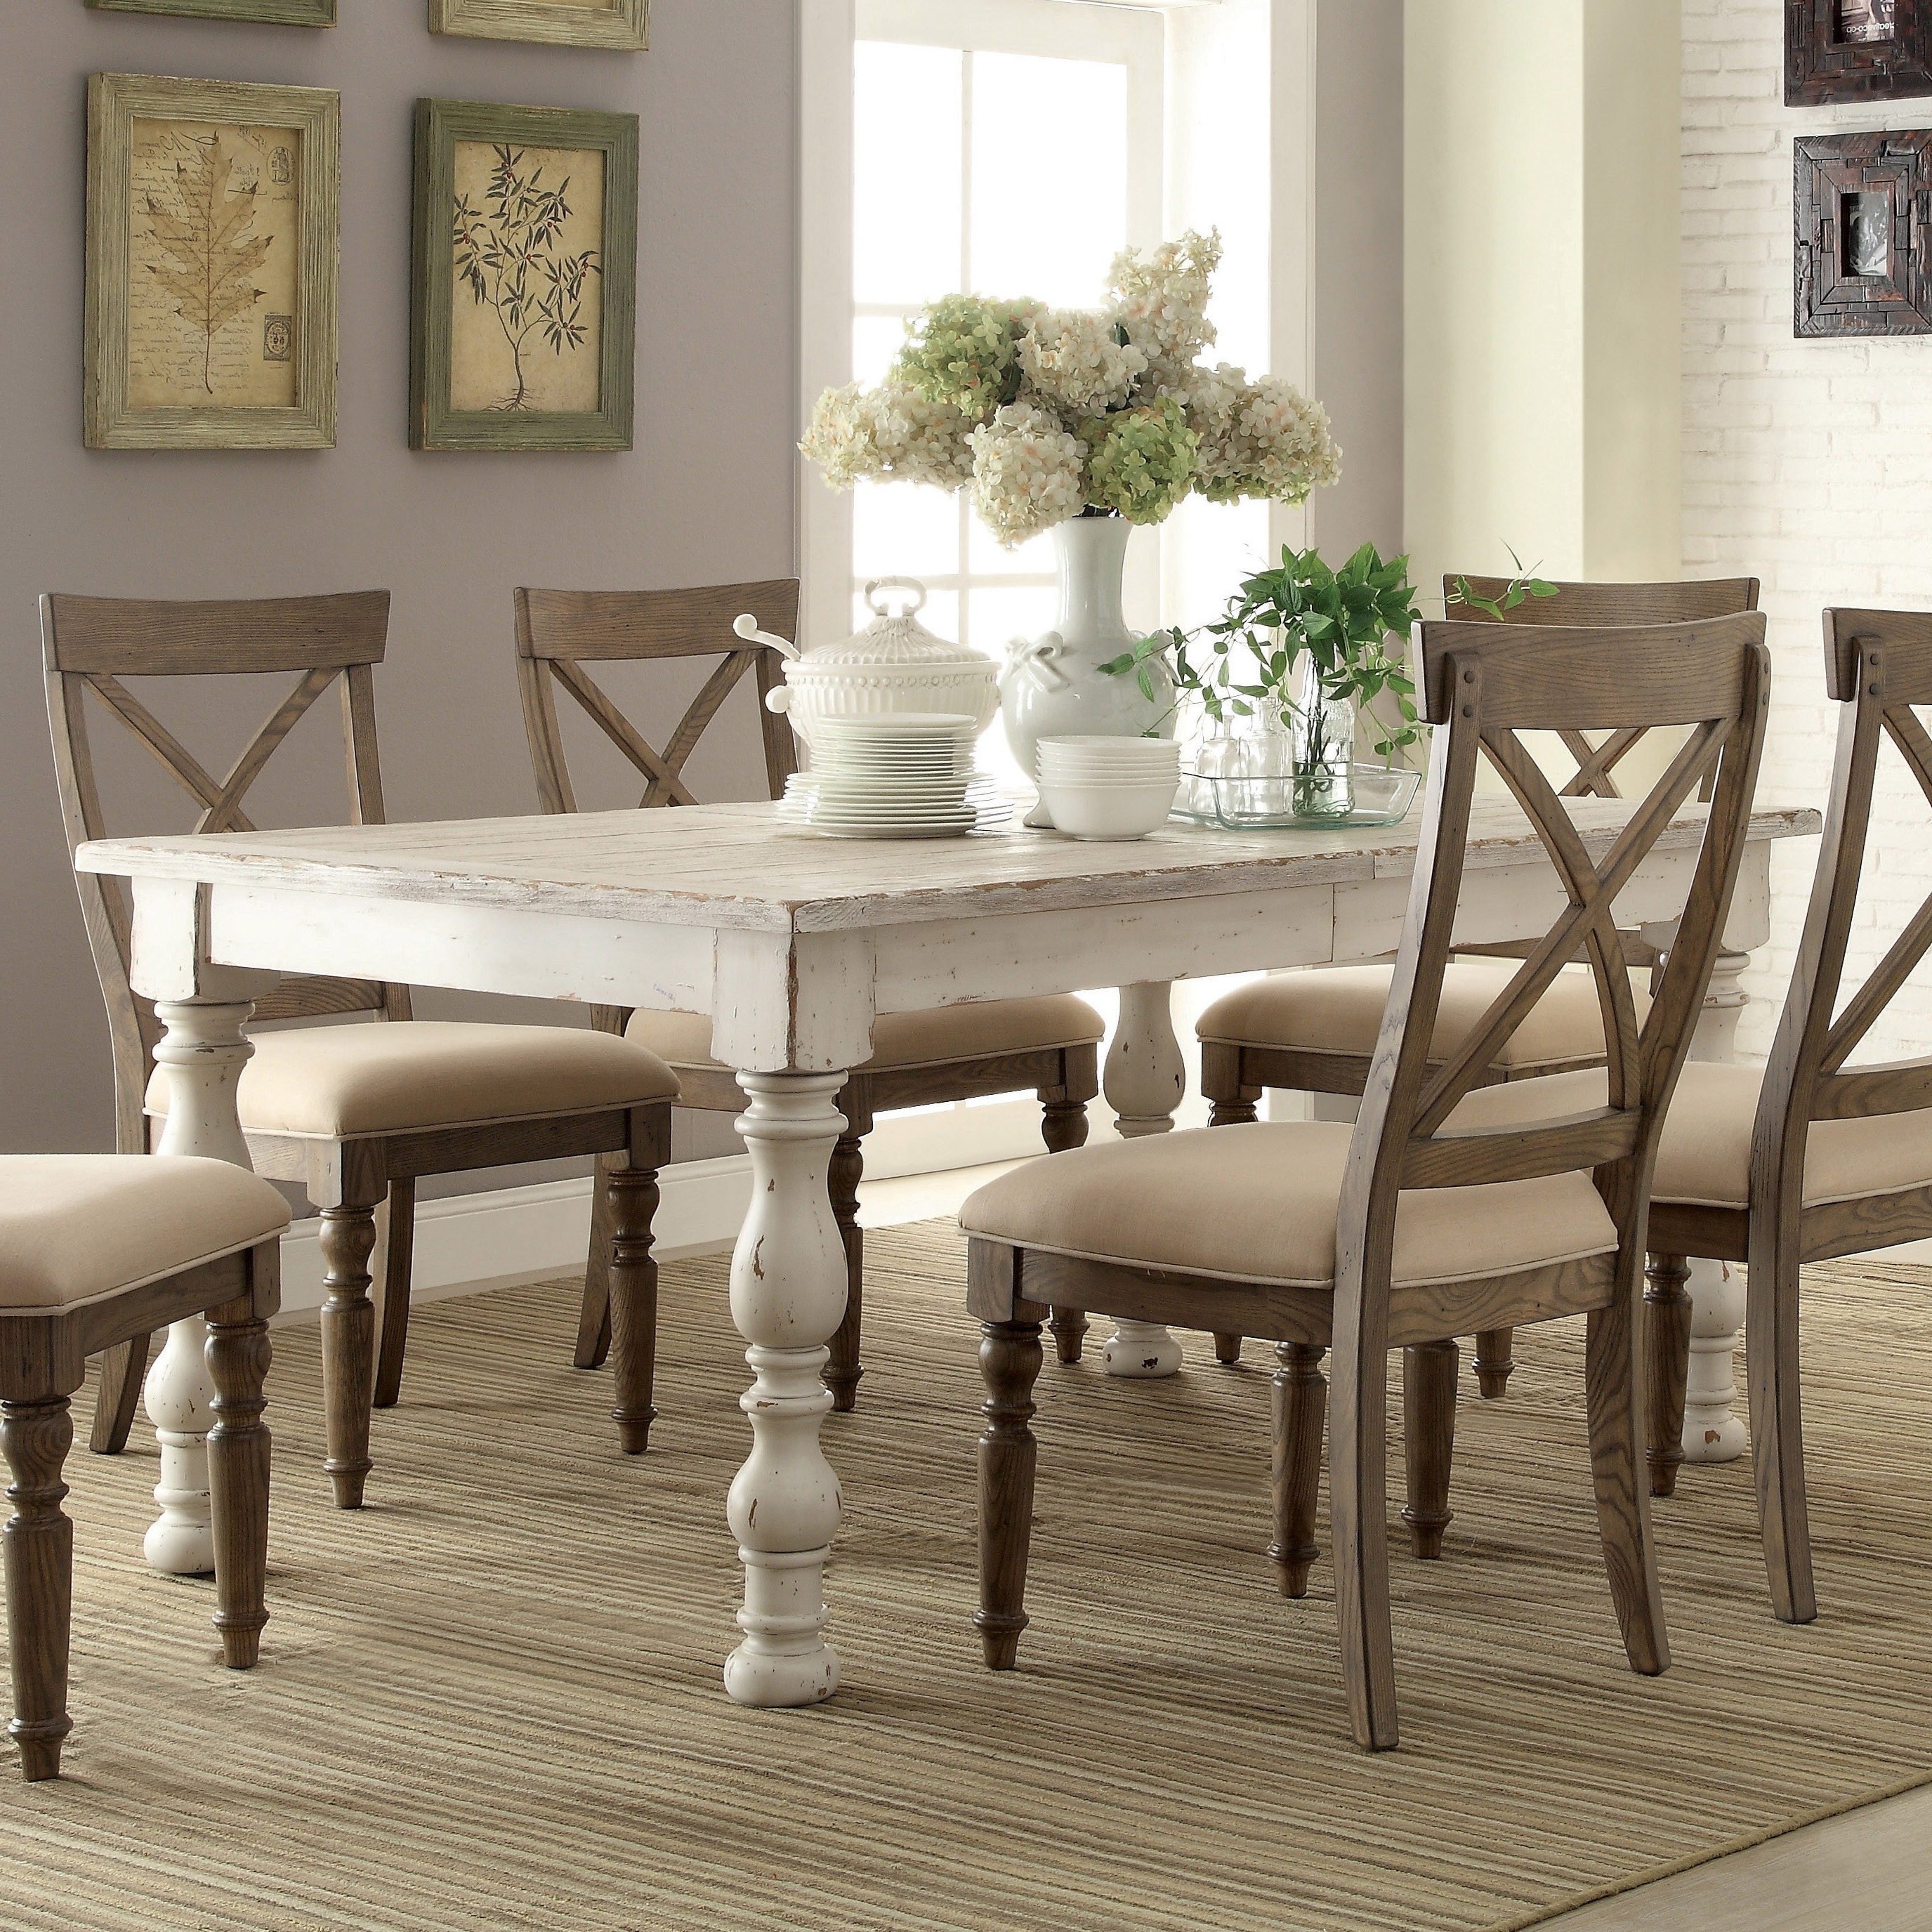 Most Up To Date Aberdeen Wood Rectangular Dining Table In Weathered Worn White With Regard To Rectangular Dining Tables Sets (View 11 of 25)